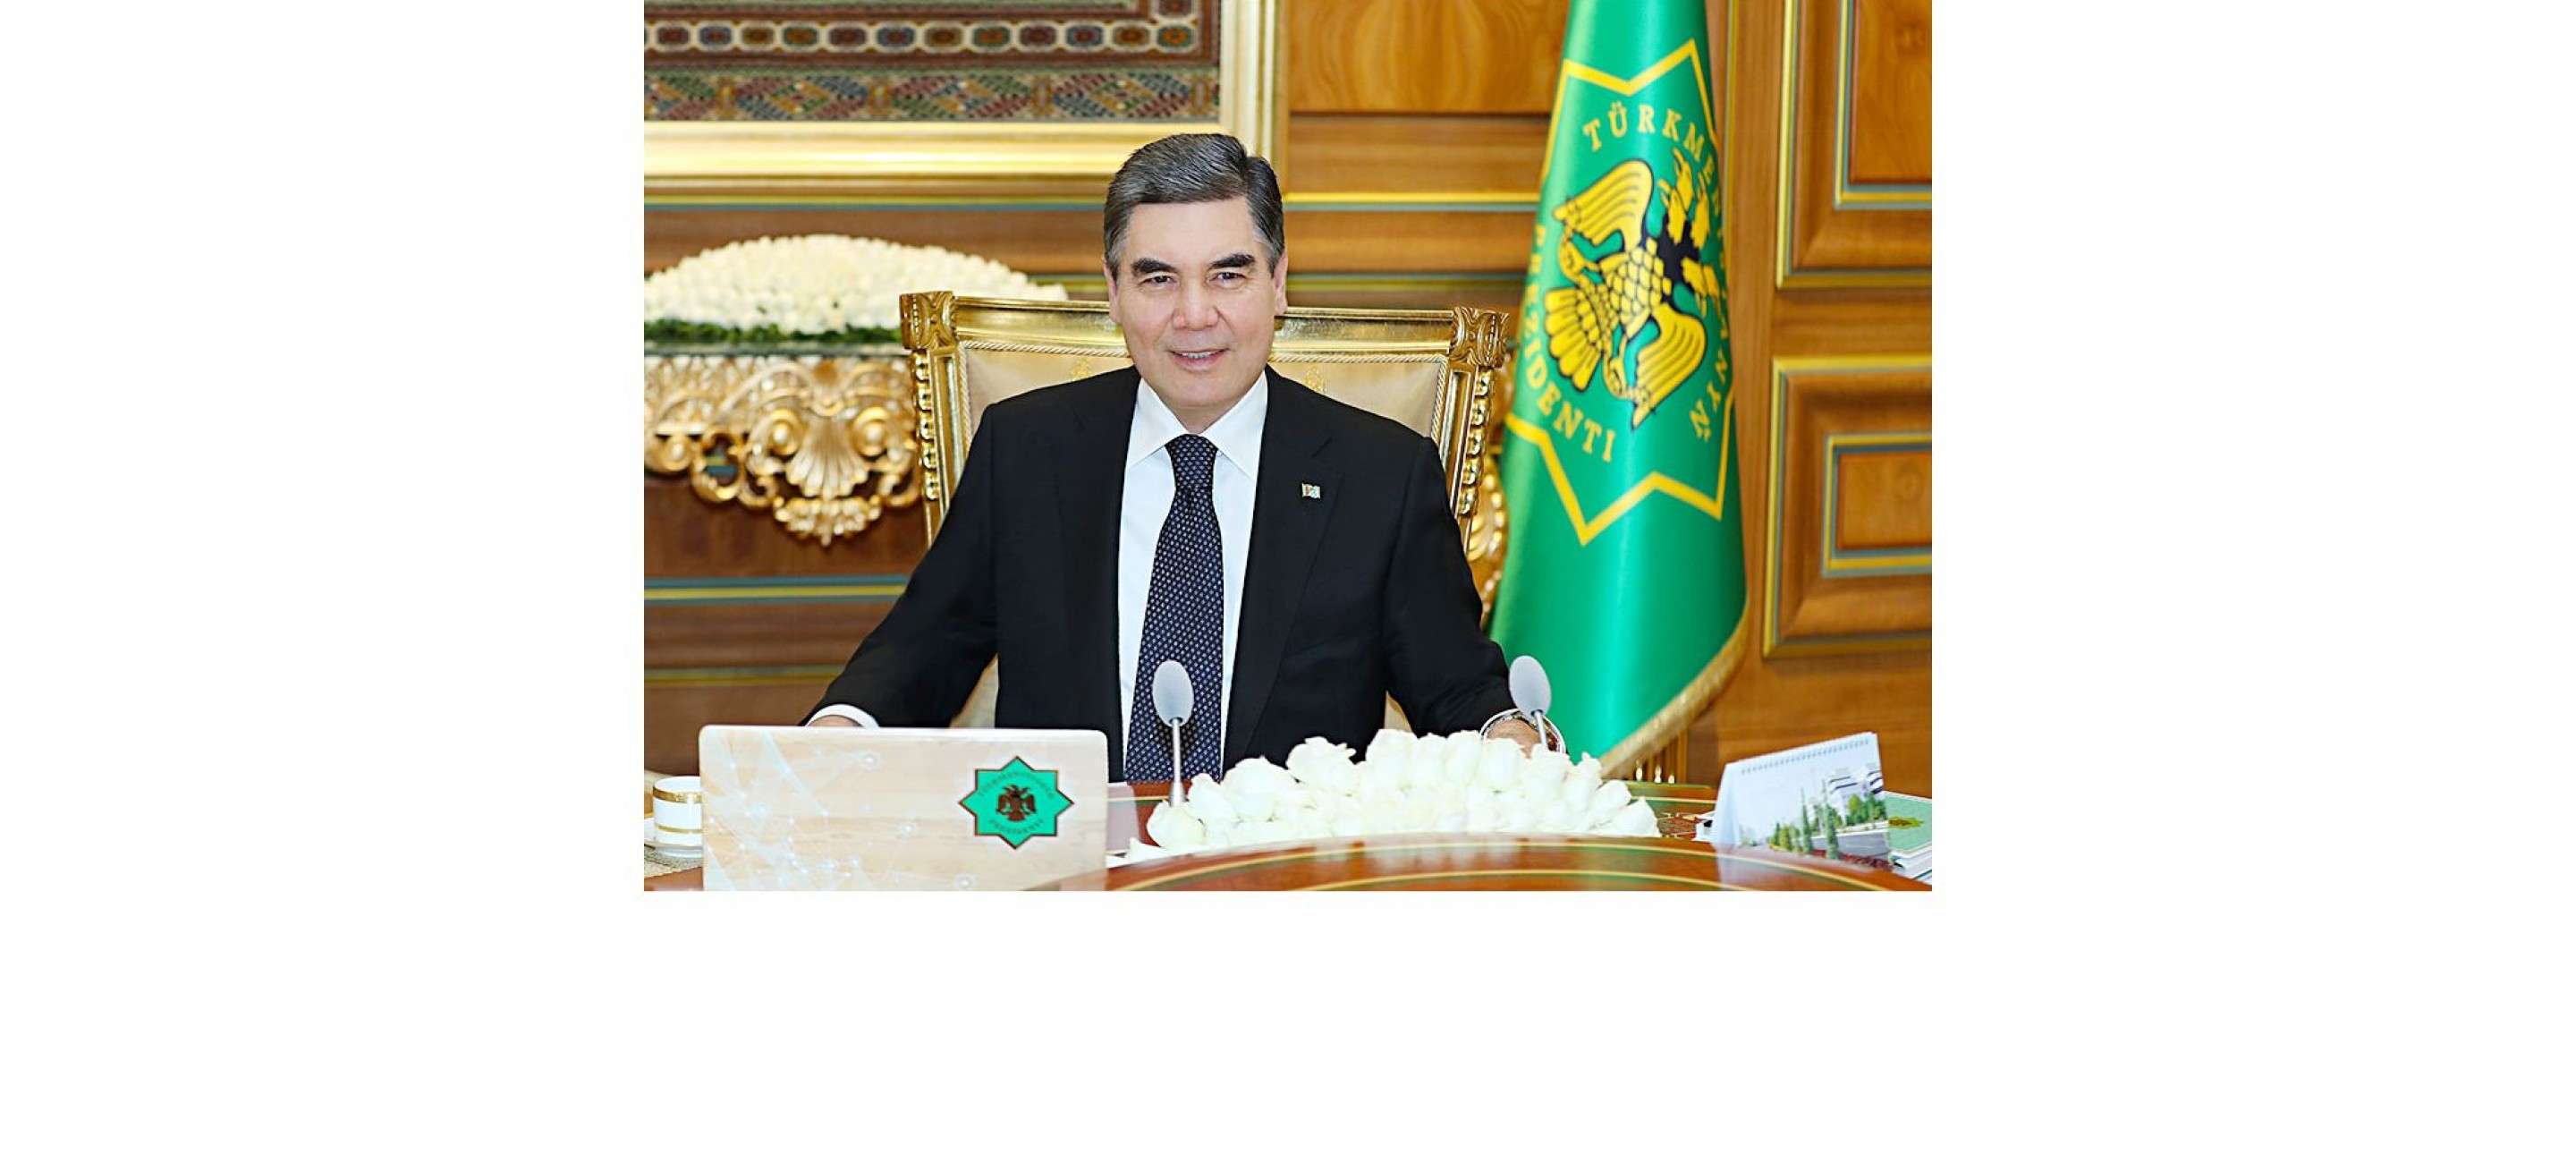 TELEPHONE CONVERSATION WAS HELD BETWEEN THE PRESIDENTS OF TURKMENISTAN AND THE KYRGYZ REPUBLIC